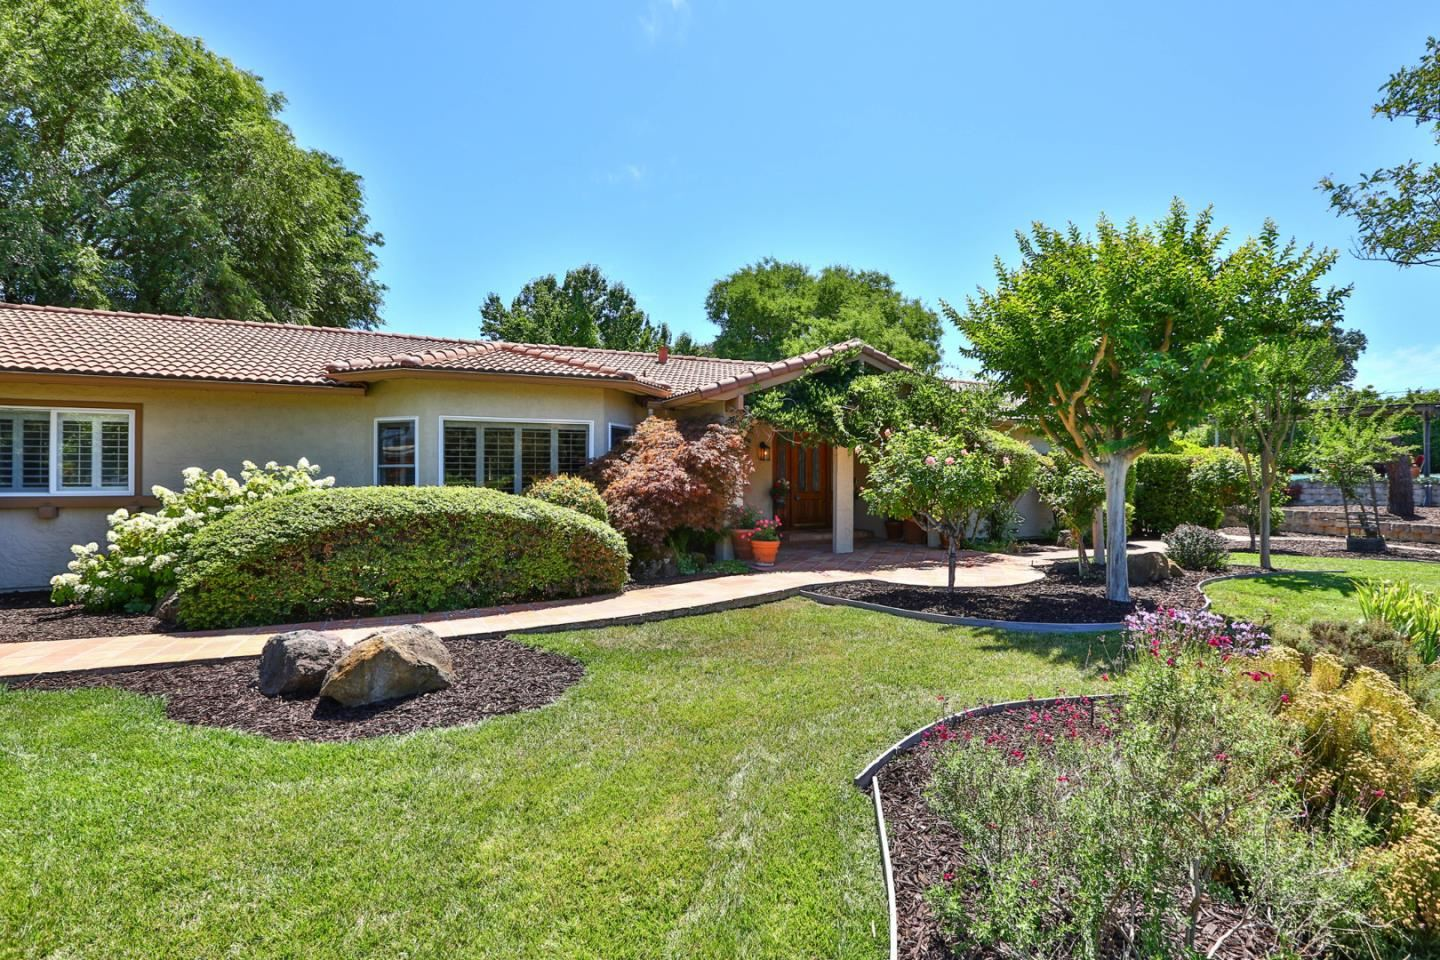 Photo for 2000 Day Road, GILROY, CA 95020 (MLS # ML81844519)